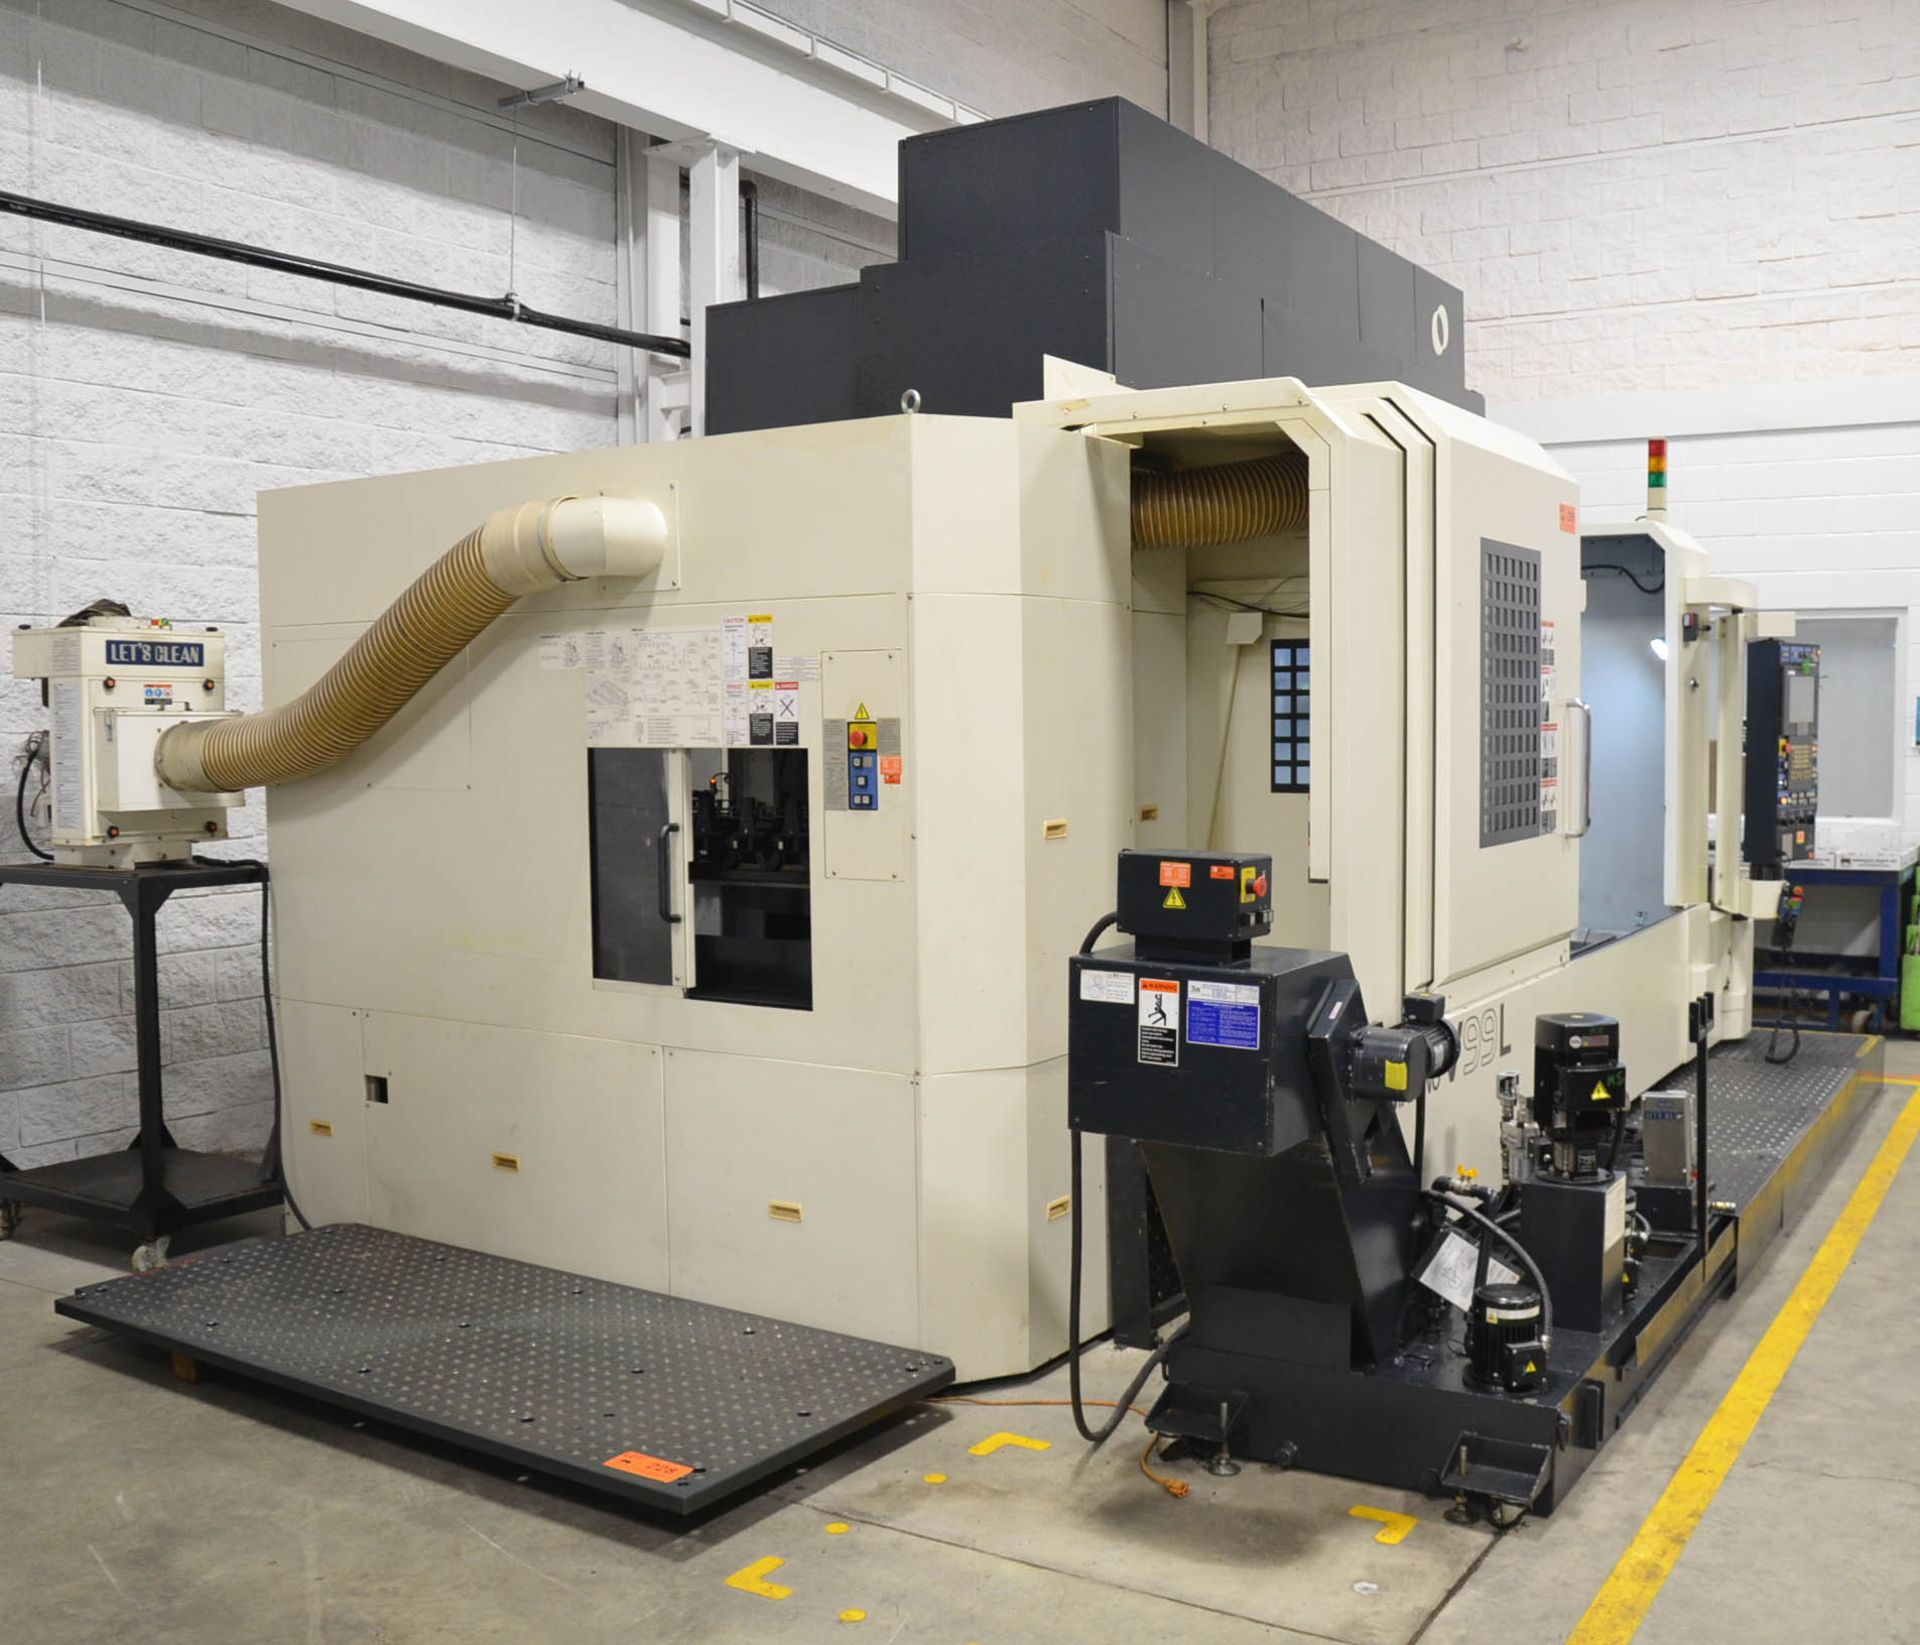 MAKINO (2008) V99L(#50) CNC VERTICAL MACHINING CENTER WITH MAKINO PROFESSIONAL 5 CNC CONTROL, 39. - Image 8 of 12